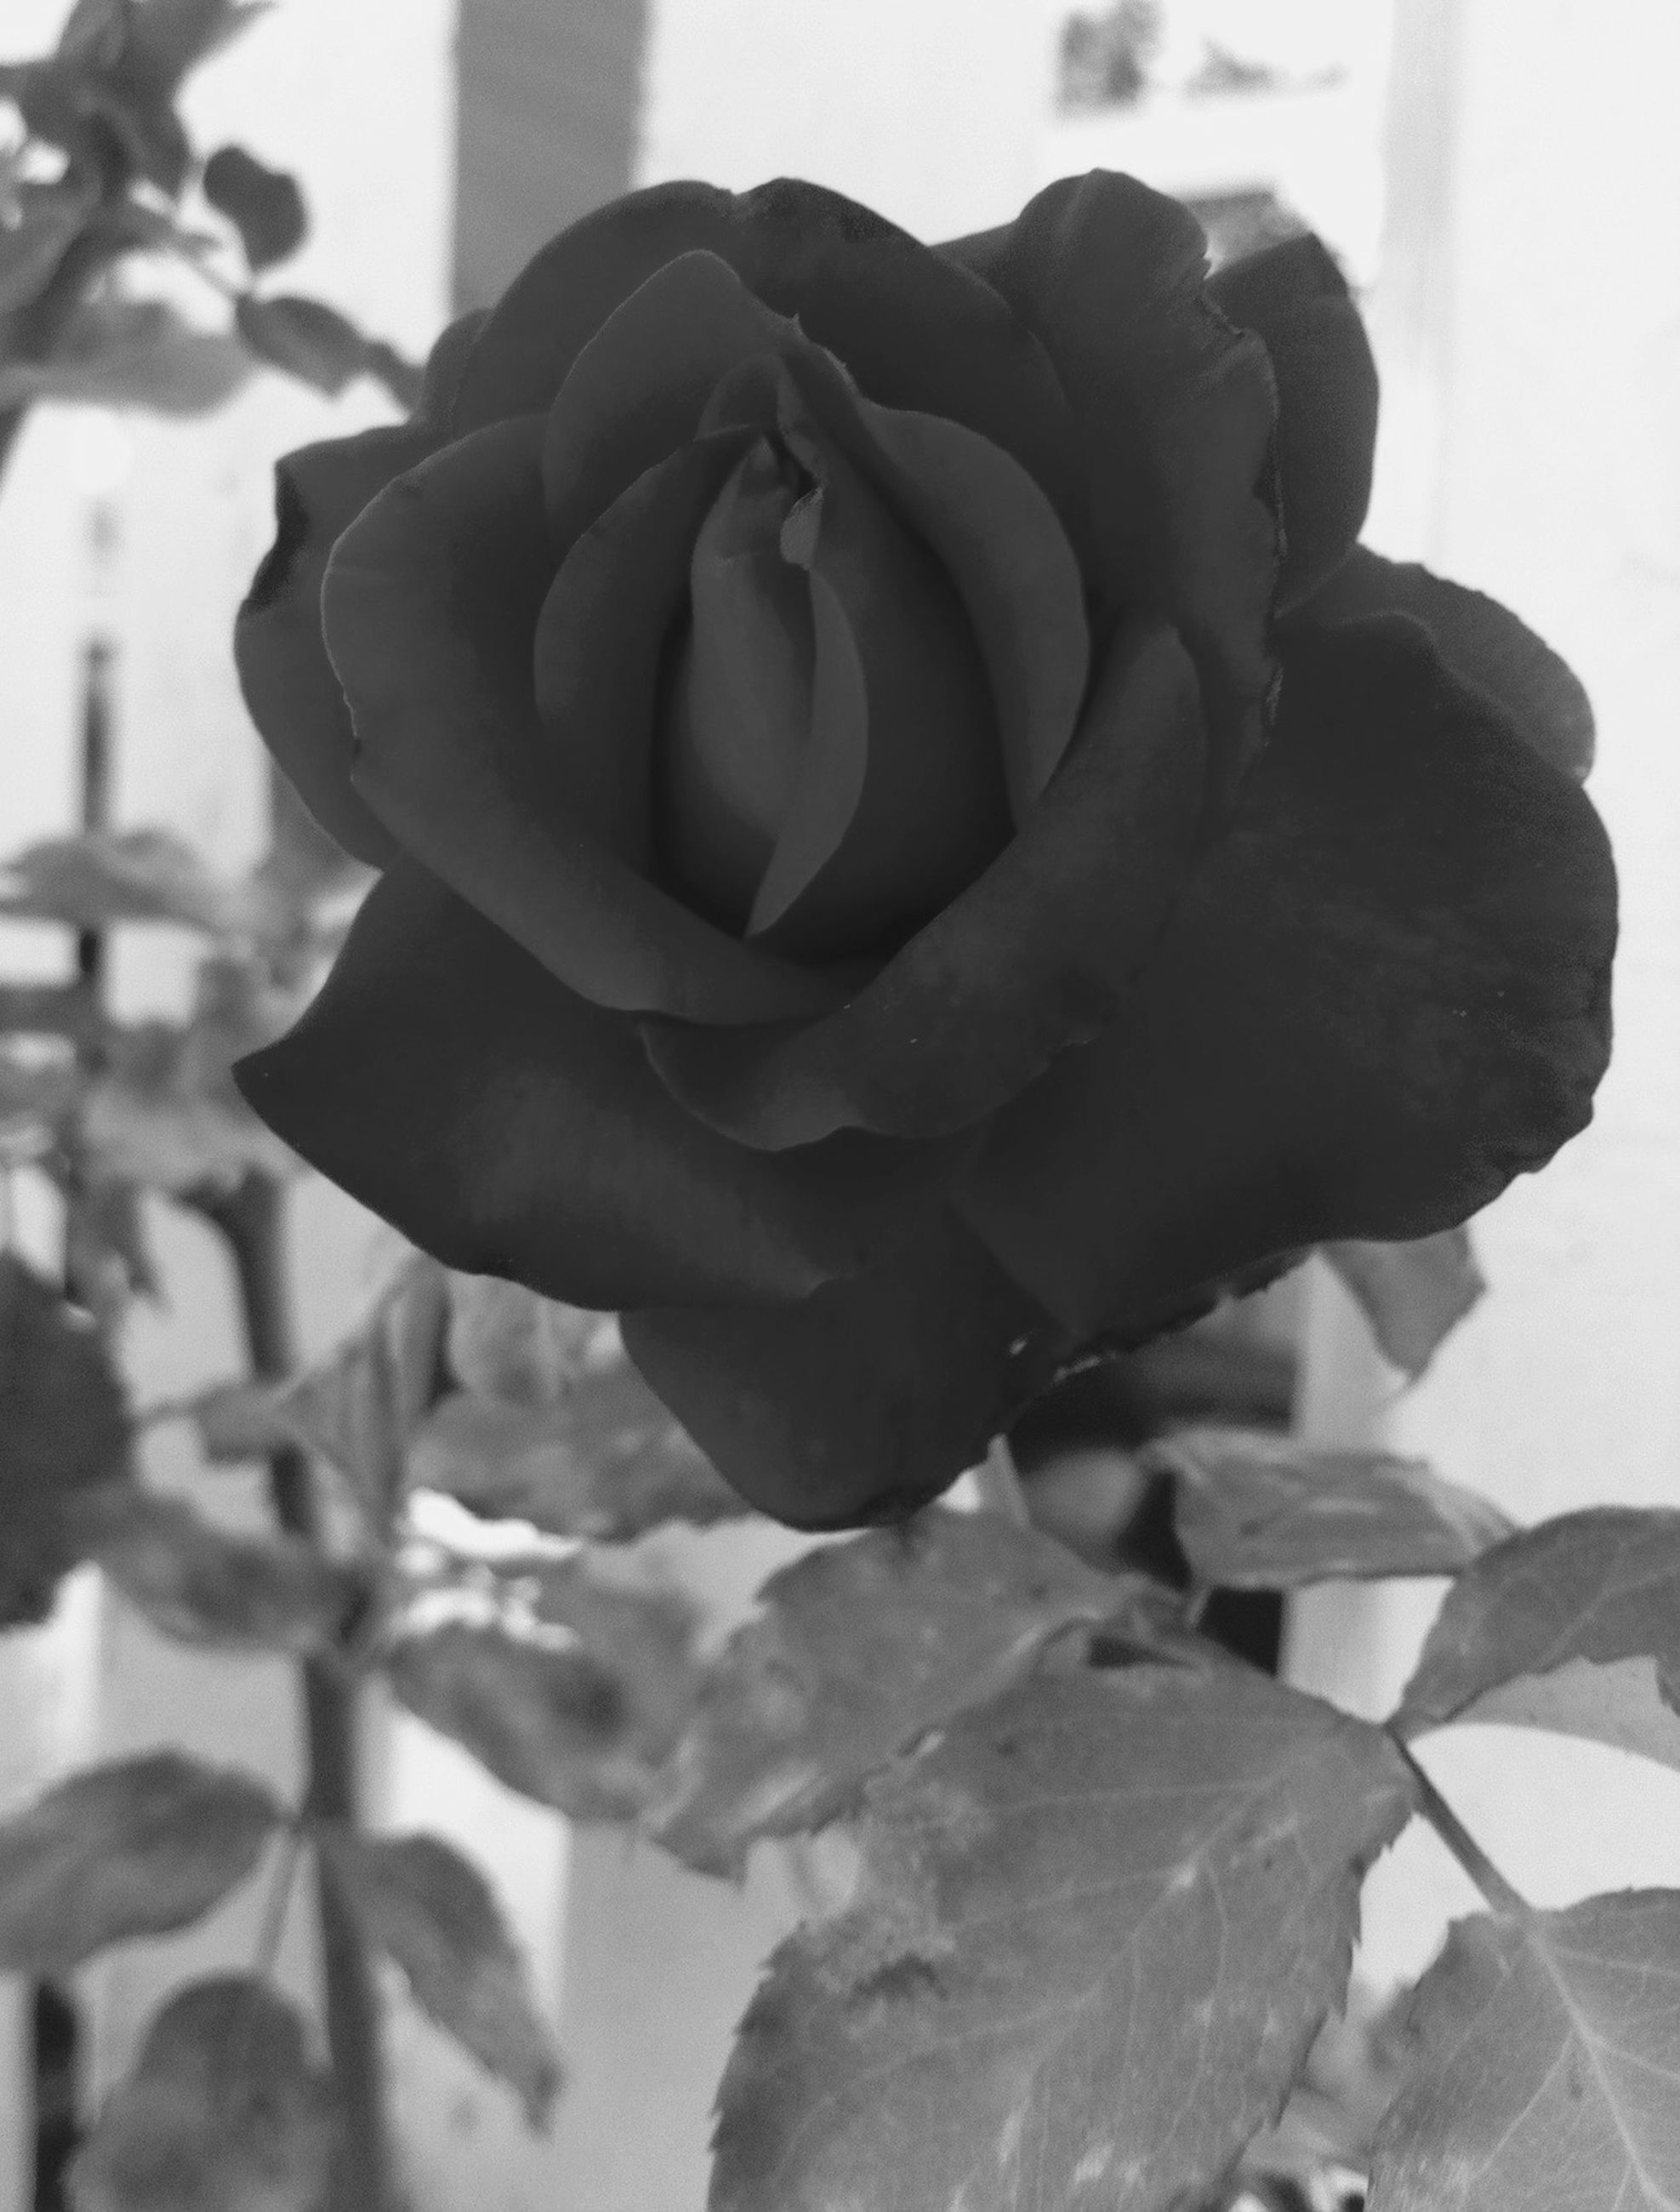 flower, rose - flower, petal, close-up, flower head, freshness, fragility, growth, focus on foreground, single flower, beauty in nature, plant, nature, rose, blooming, single rose, no people, leaf, day, in bloom